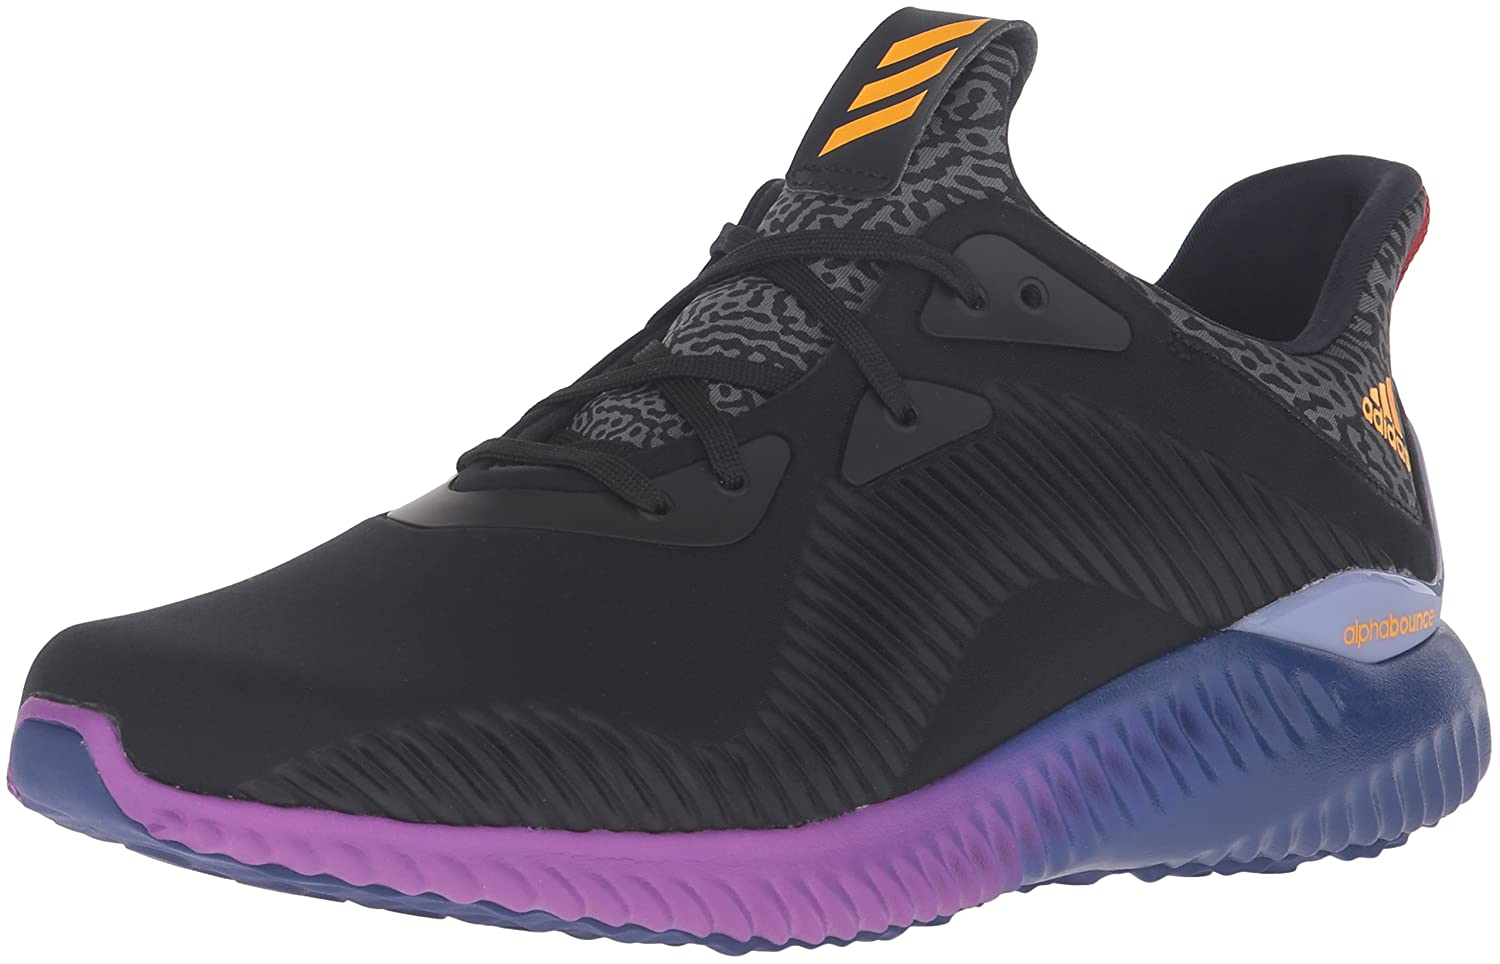 9b9a83c52564e adidas Performance Men s Alphabounce M Running Shoe Black Solar Gold Shock  Purple 10 D(M) US  Buy Online at Low Prices in India - Amazon.in